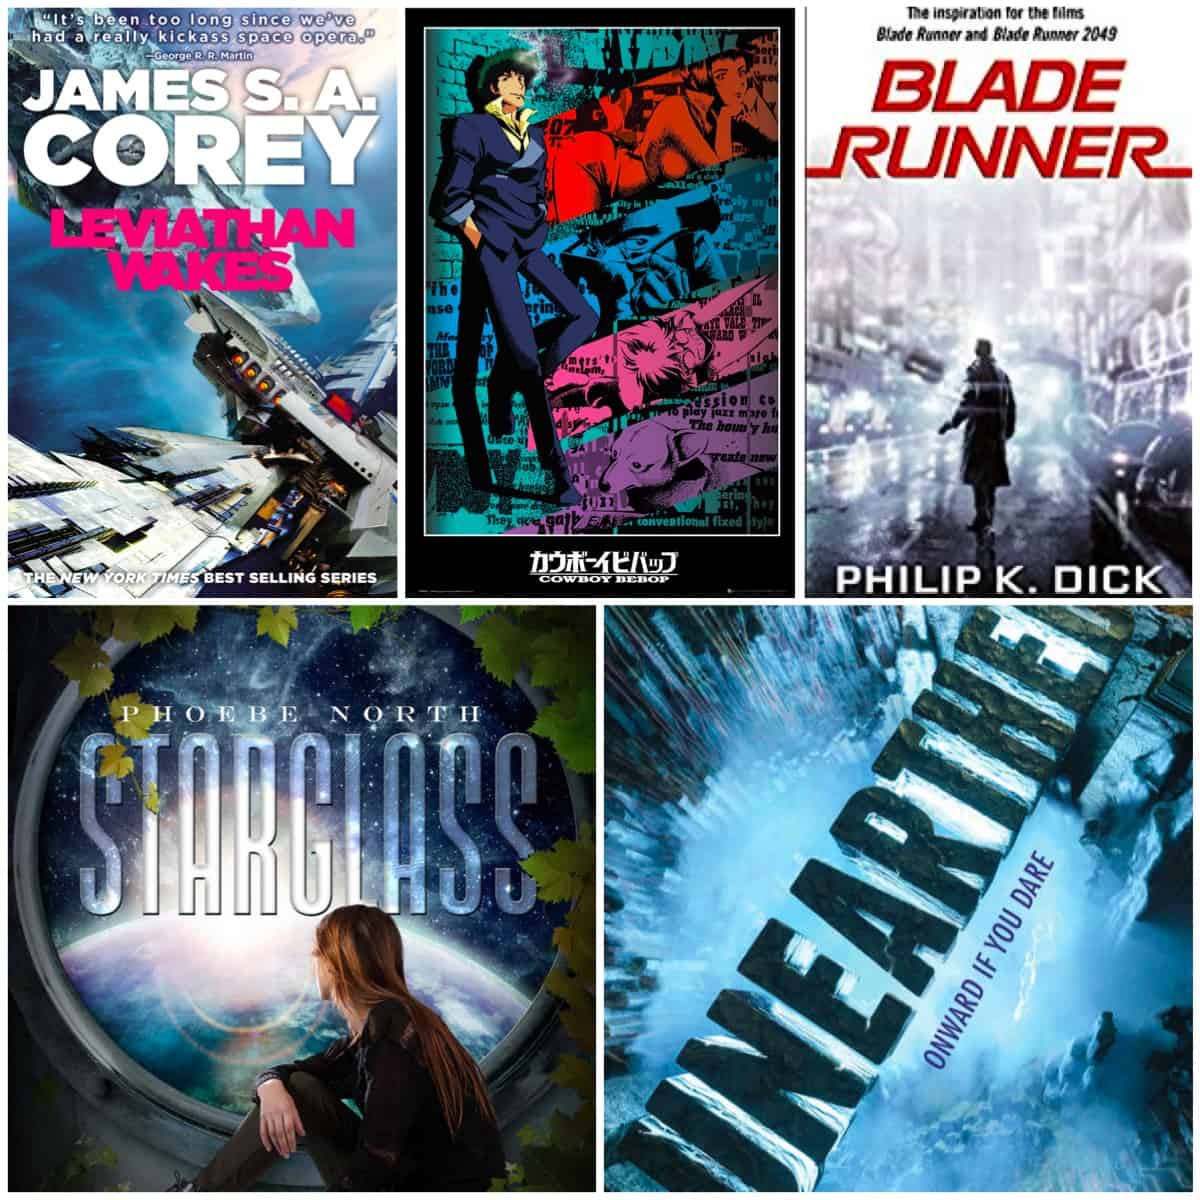 In this discussion post, I share my favorite science fiction tropes and the books/TV/Movies I've seen them in. What are your favorite sci-fi tropes?